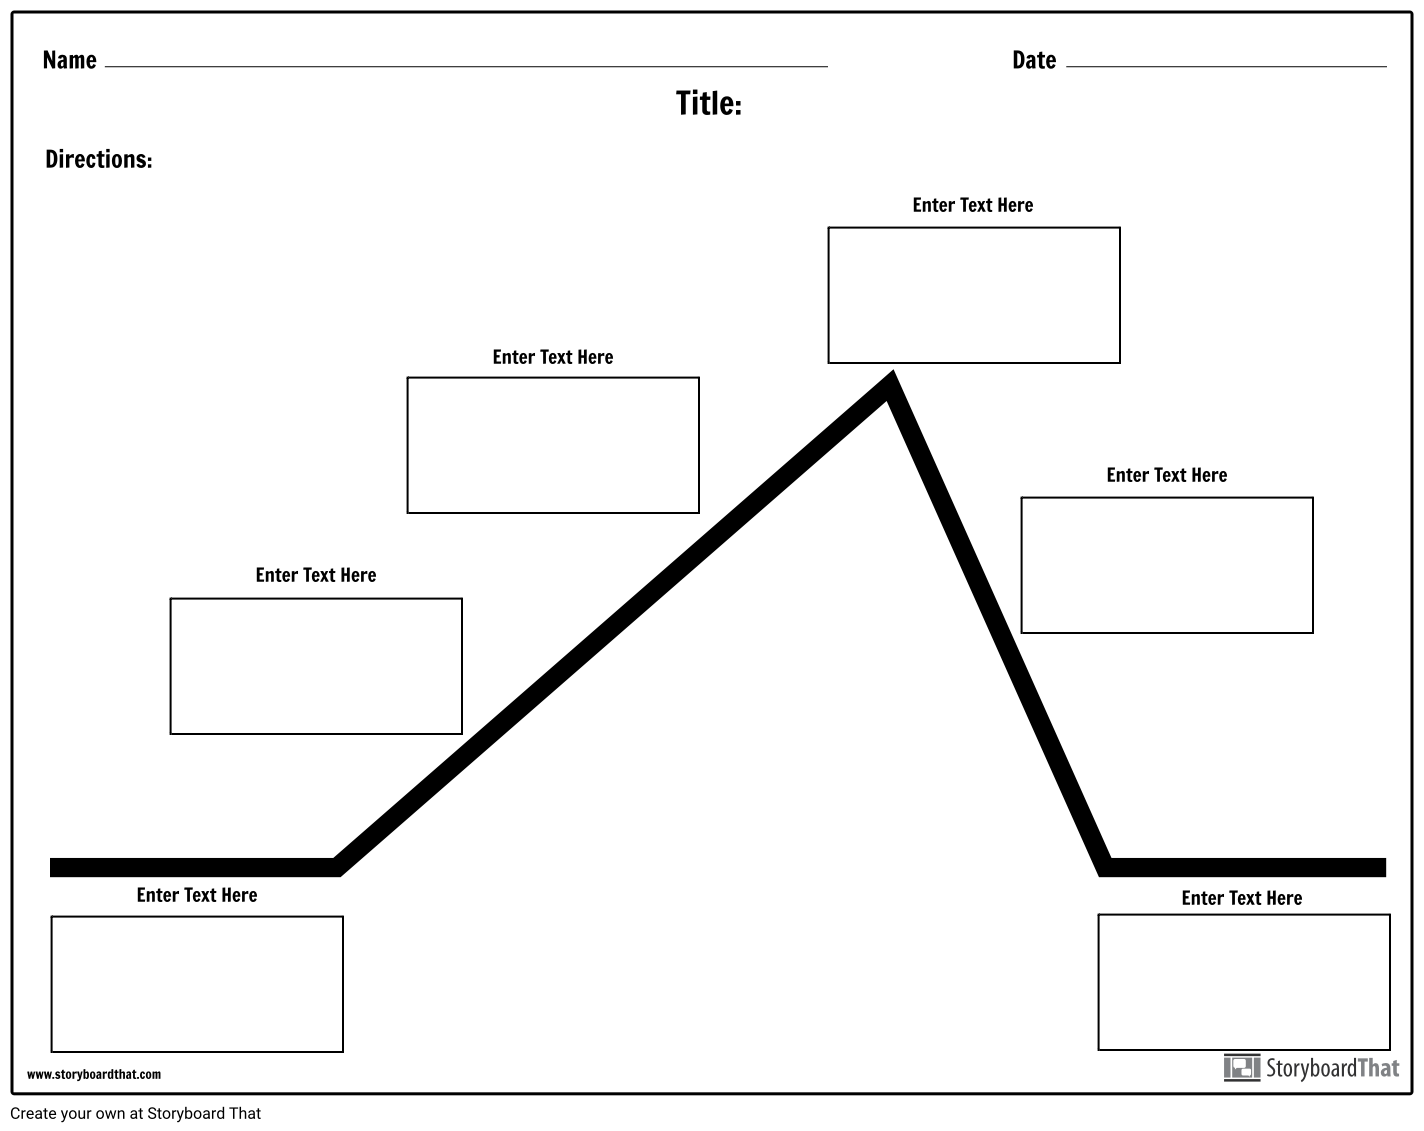 small resolution of Use Storyboard That's worksheet maker to create Plot Diagram Worksheets!  Use one of the many templates to…   Plot diagram